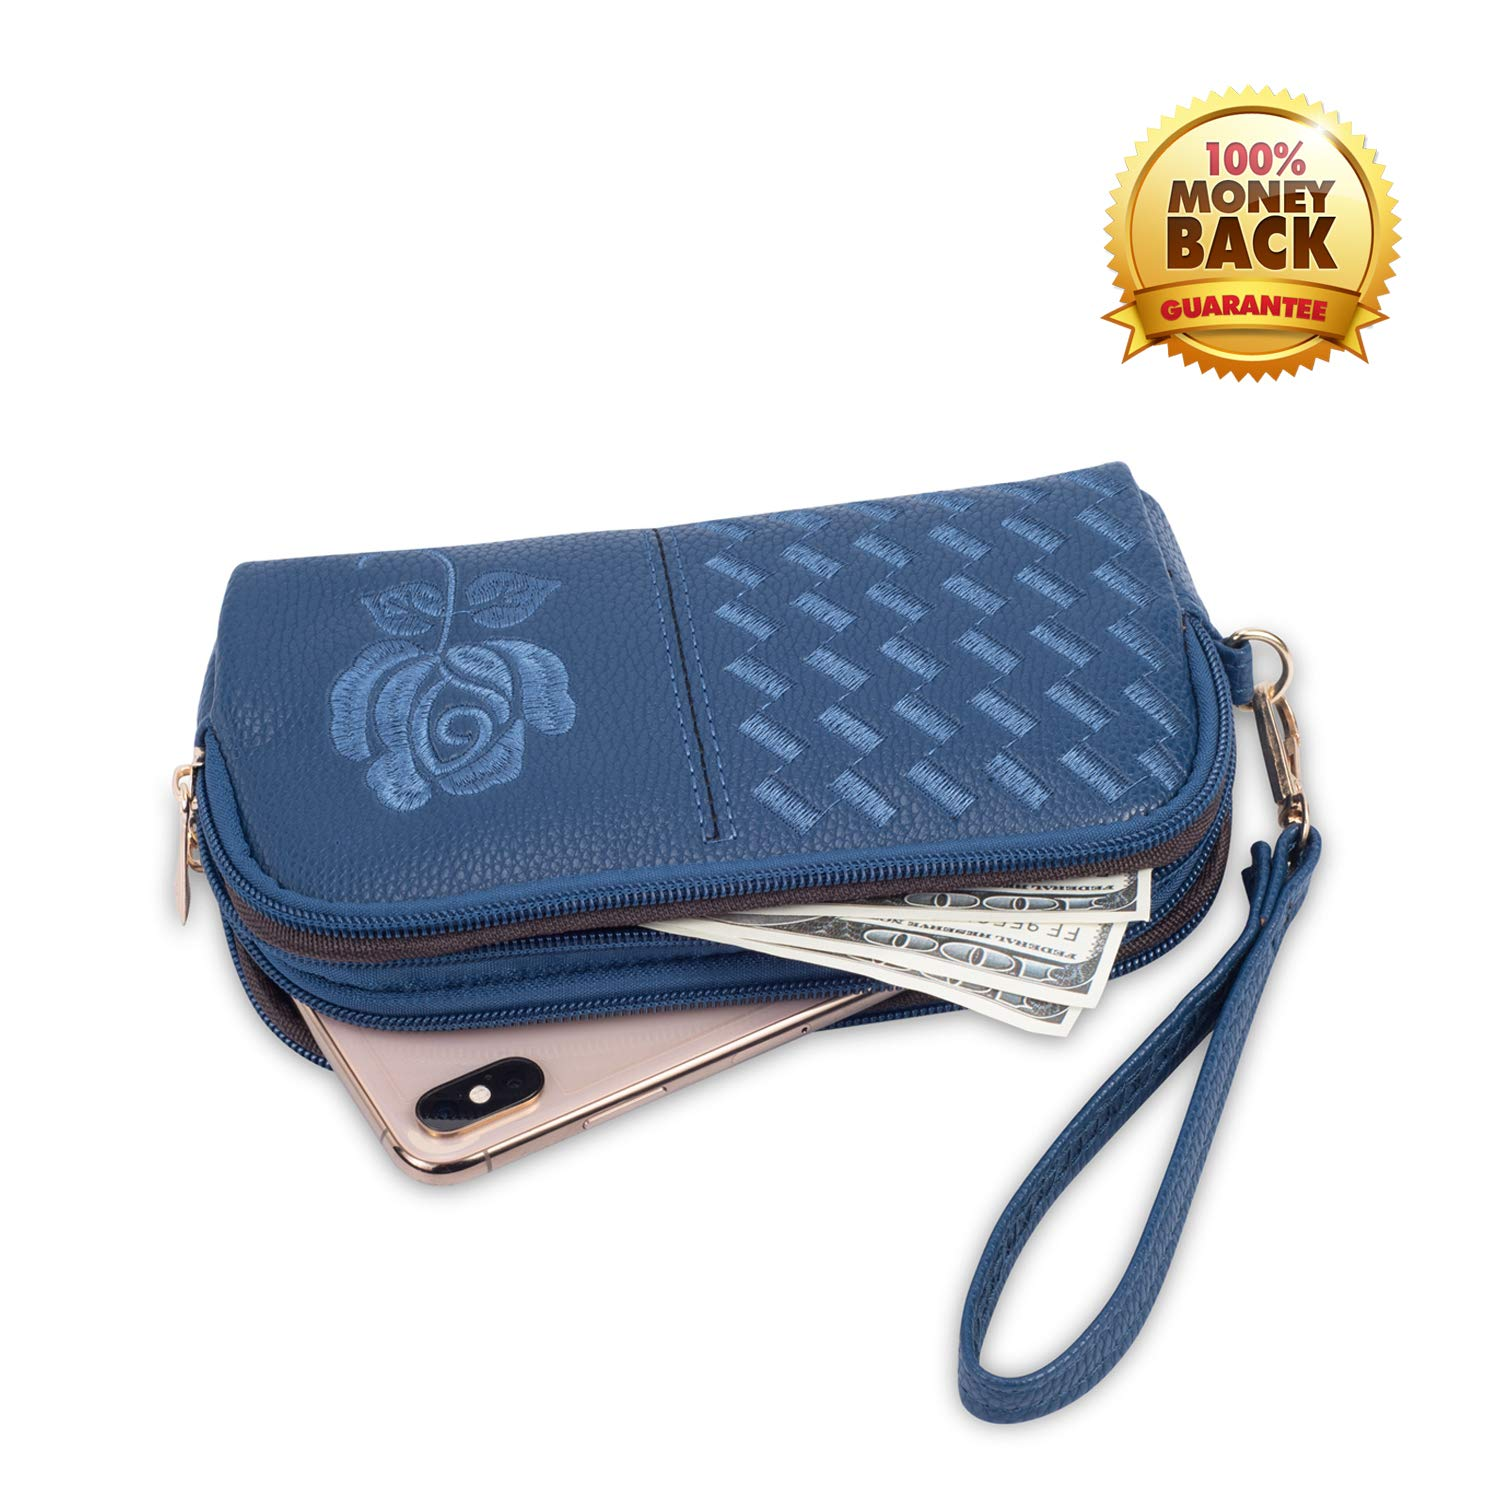 Wristlet Wallet with Strap for Women, Leather Wristlets Phone Purse Clutch for iphone (Wristlet blue) by JZE (Image #1)